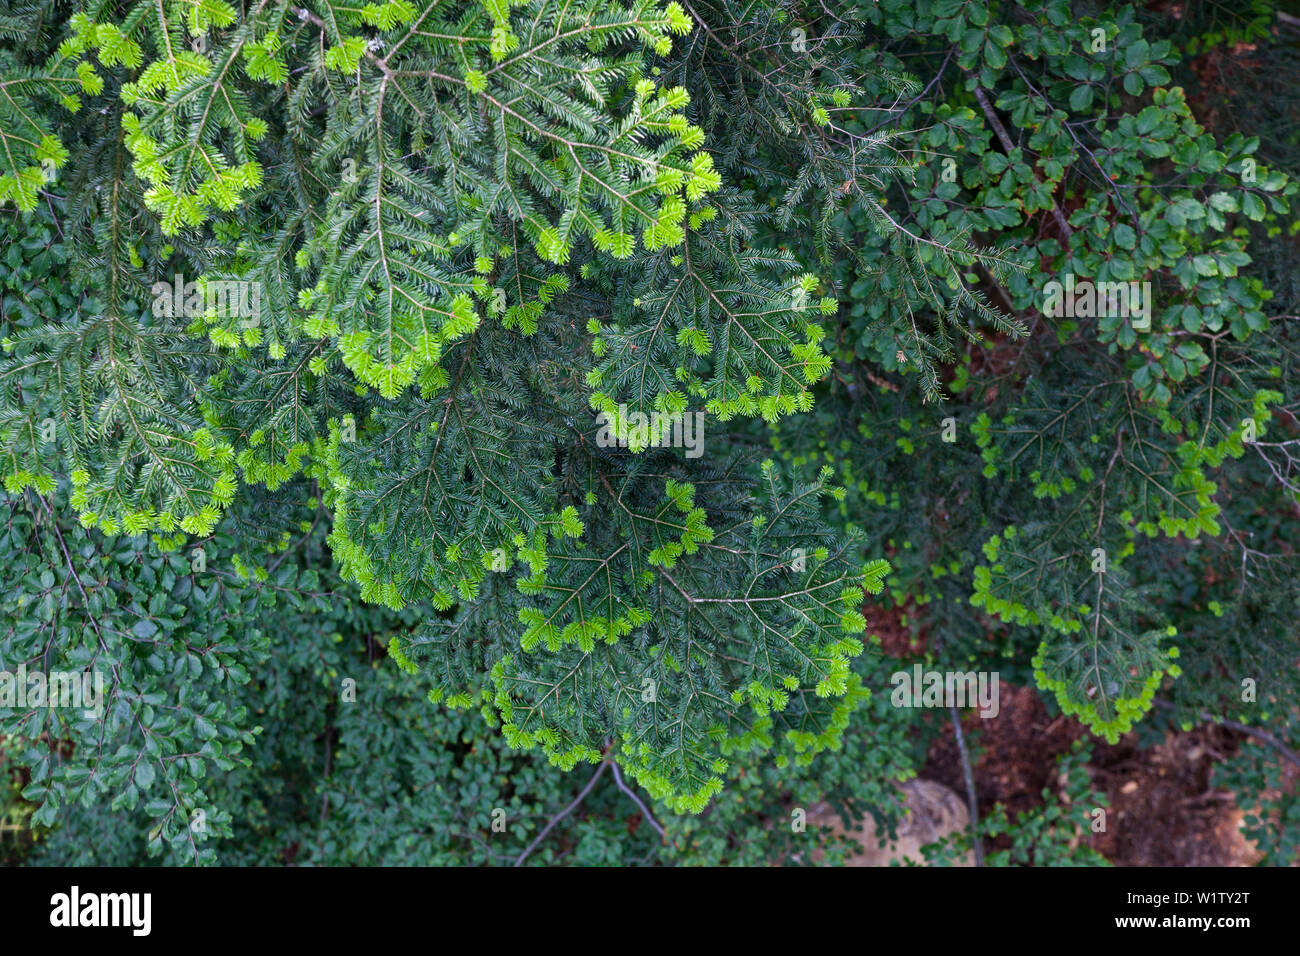 Fir tree, fresh sprouts, Abies alba, Bavarian Forest National Park, Lower Bavaria, Germany, Europe - Stock Image